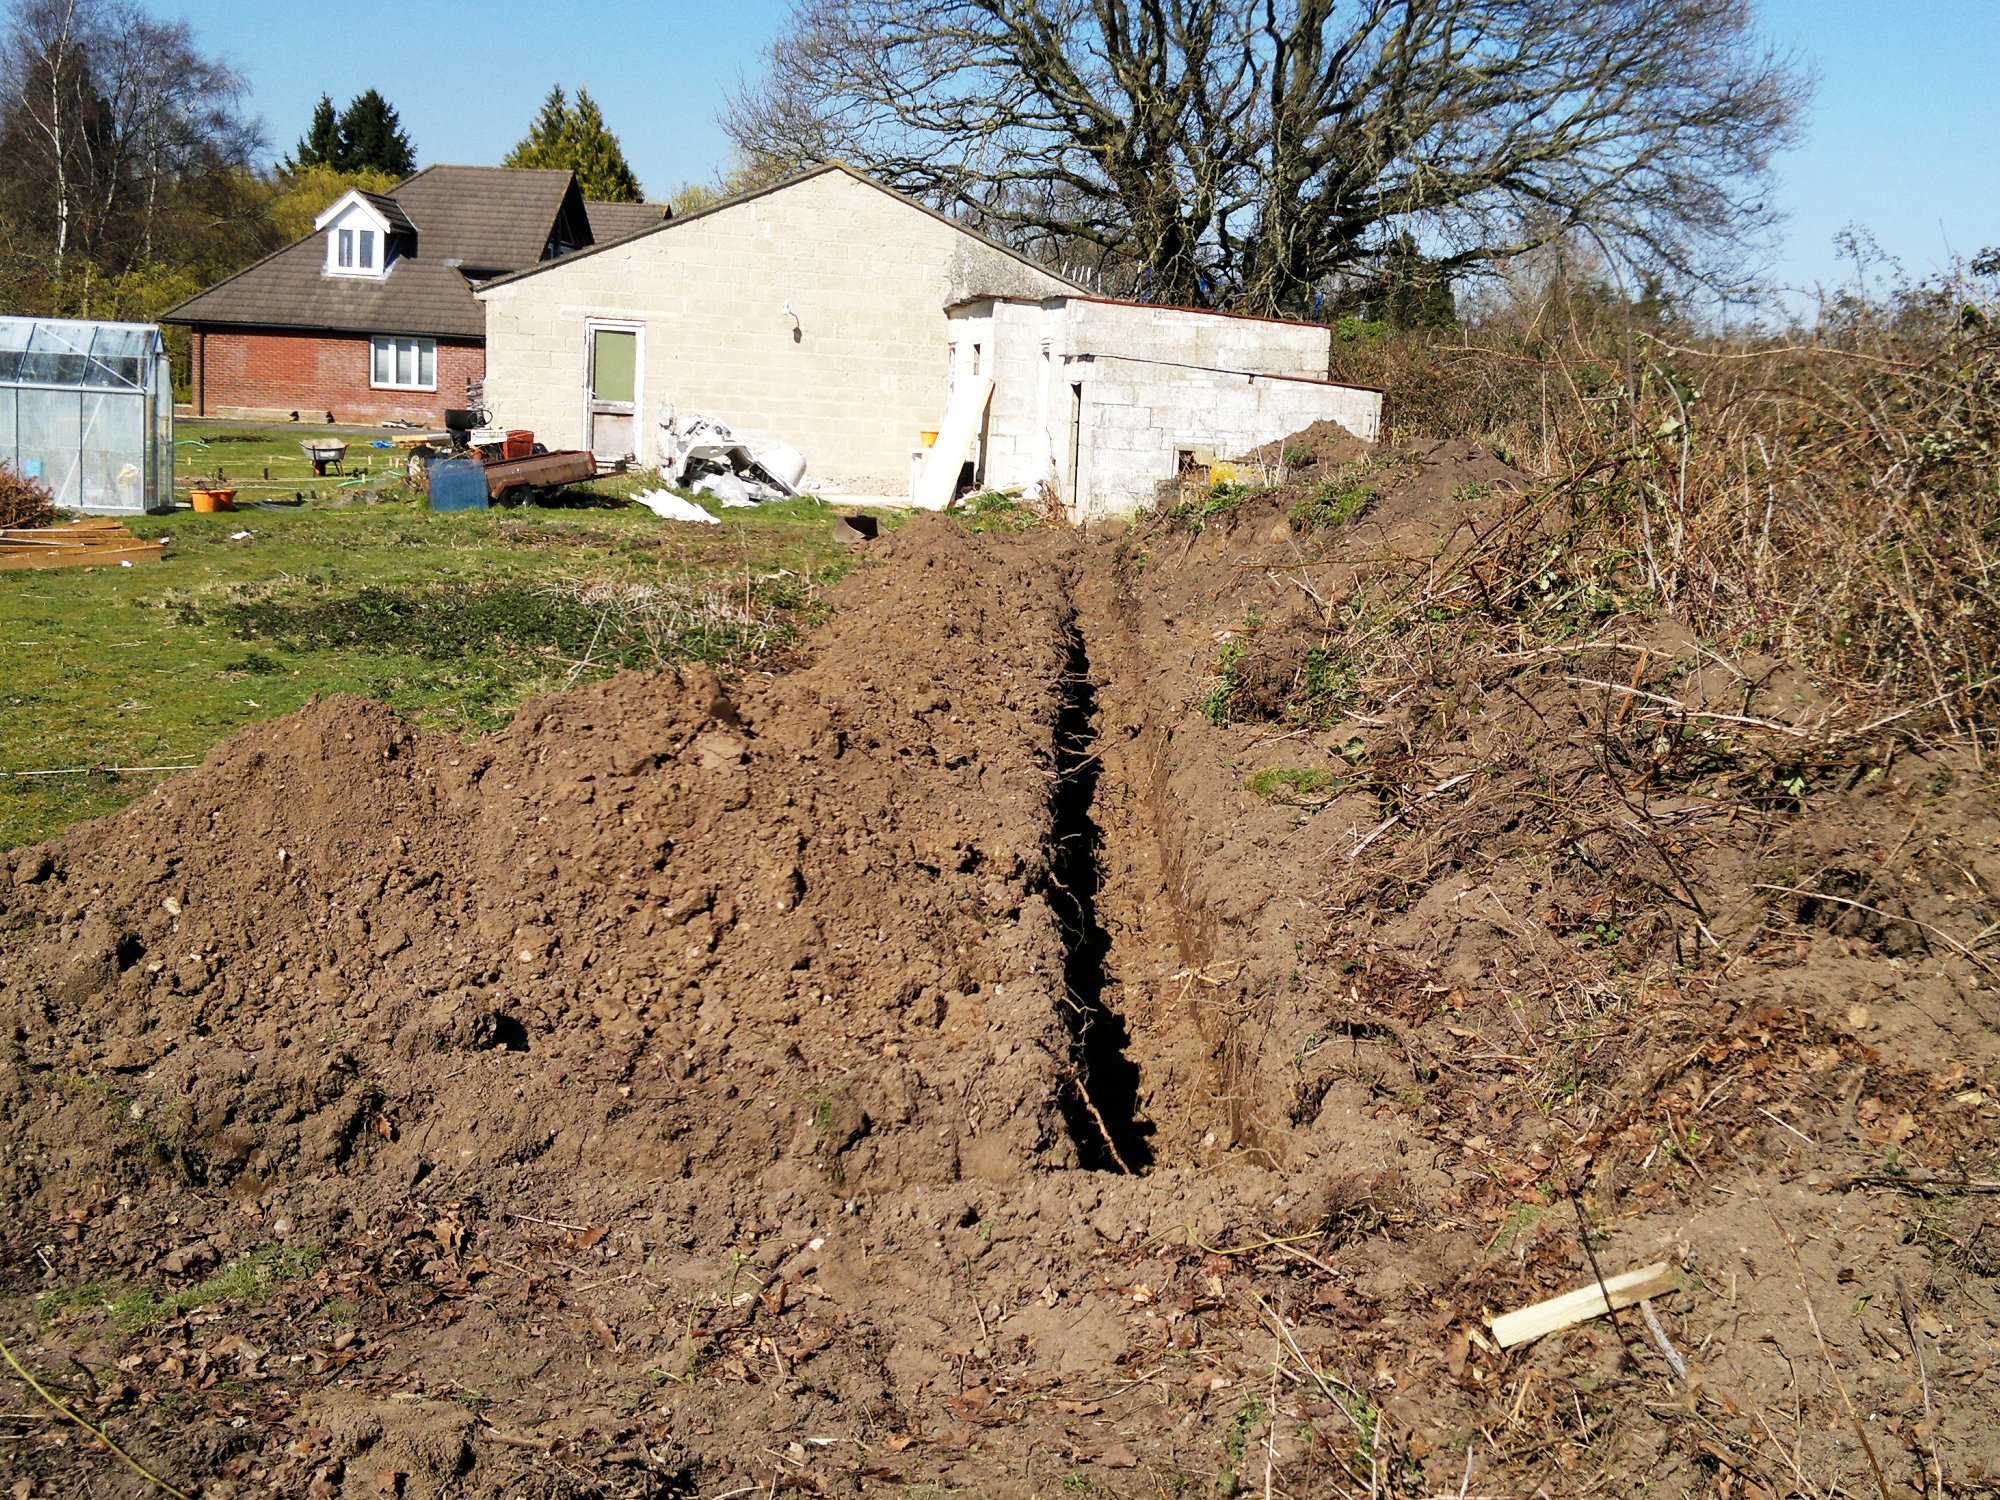 Trench returning to end wall of outbuildings to form the eastern boundary